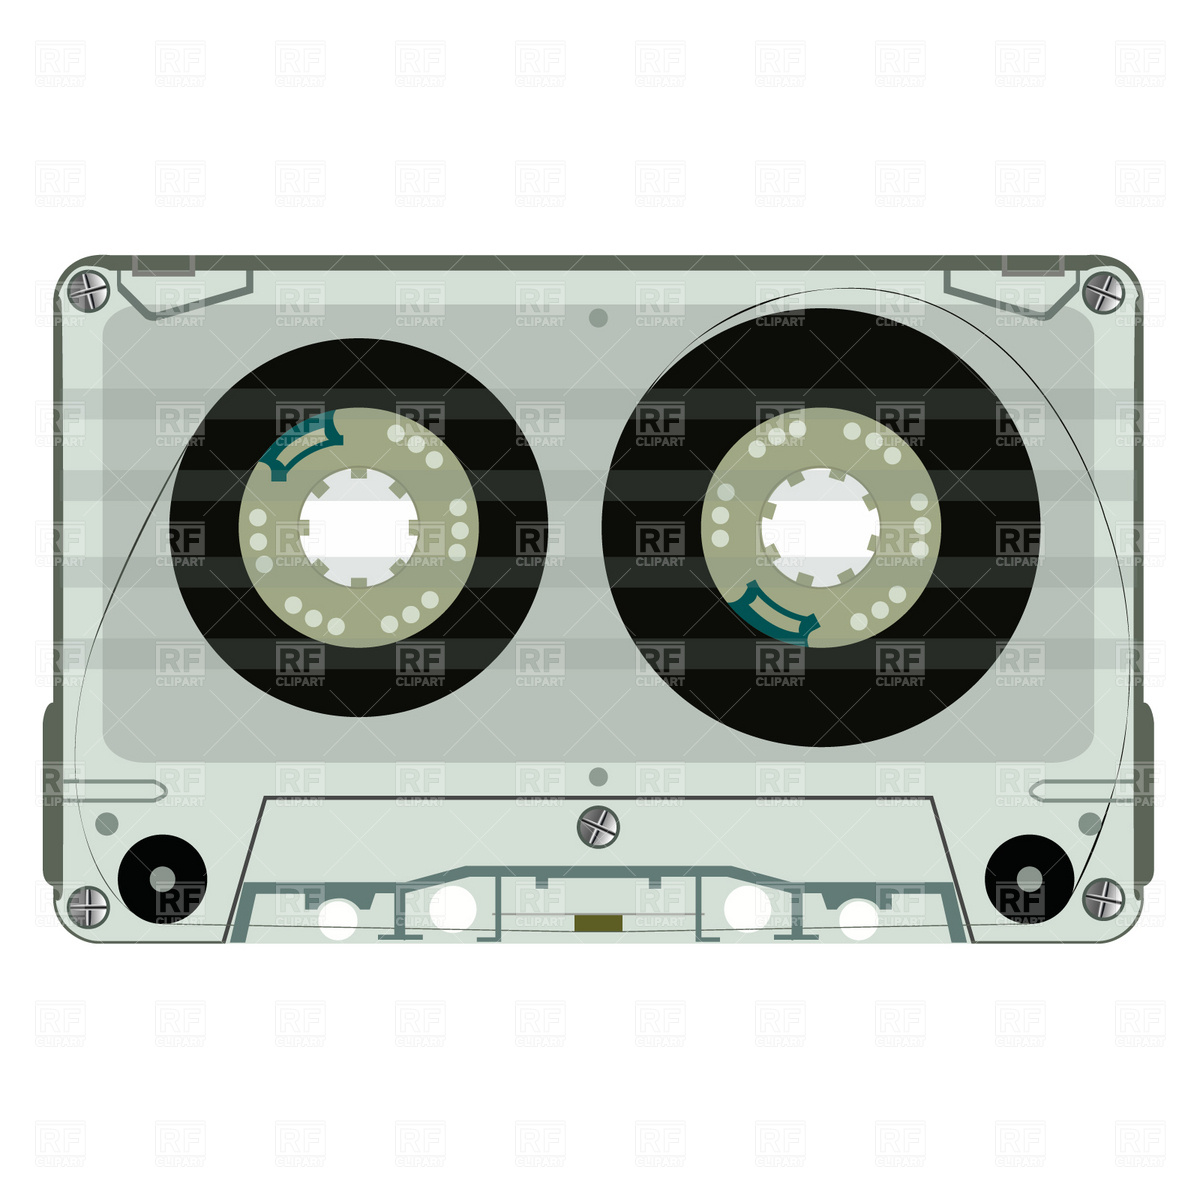 1200x1200 Colorful Retro Cassette Tapes Vector Image Vector Artwork Of